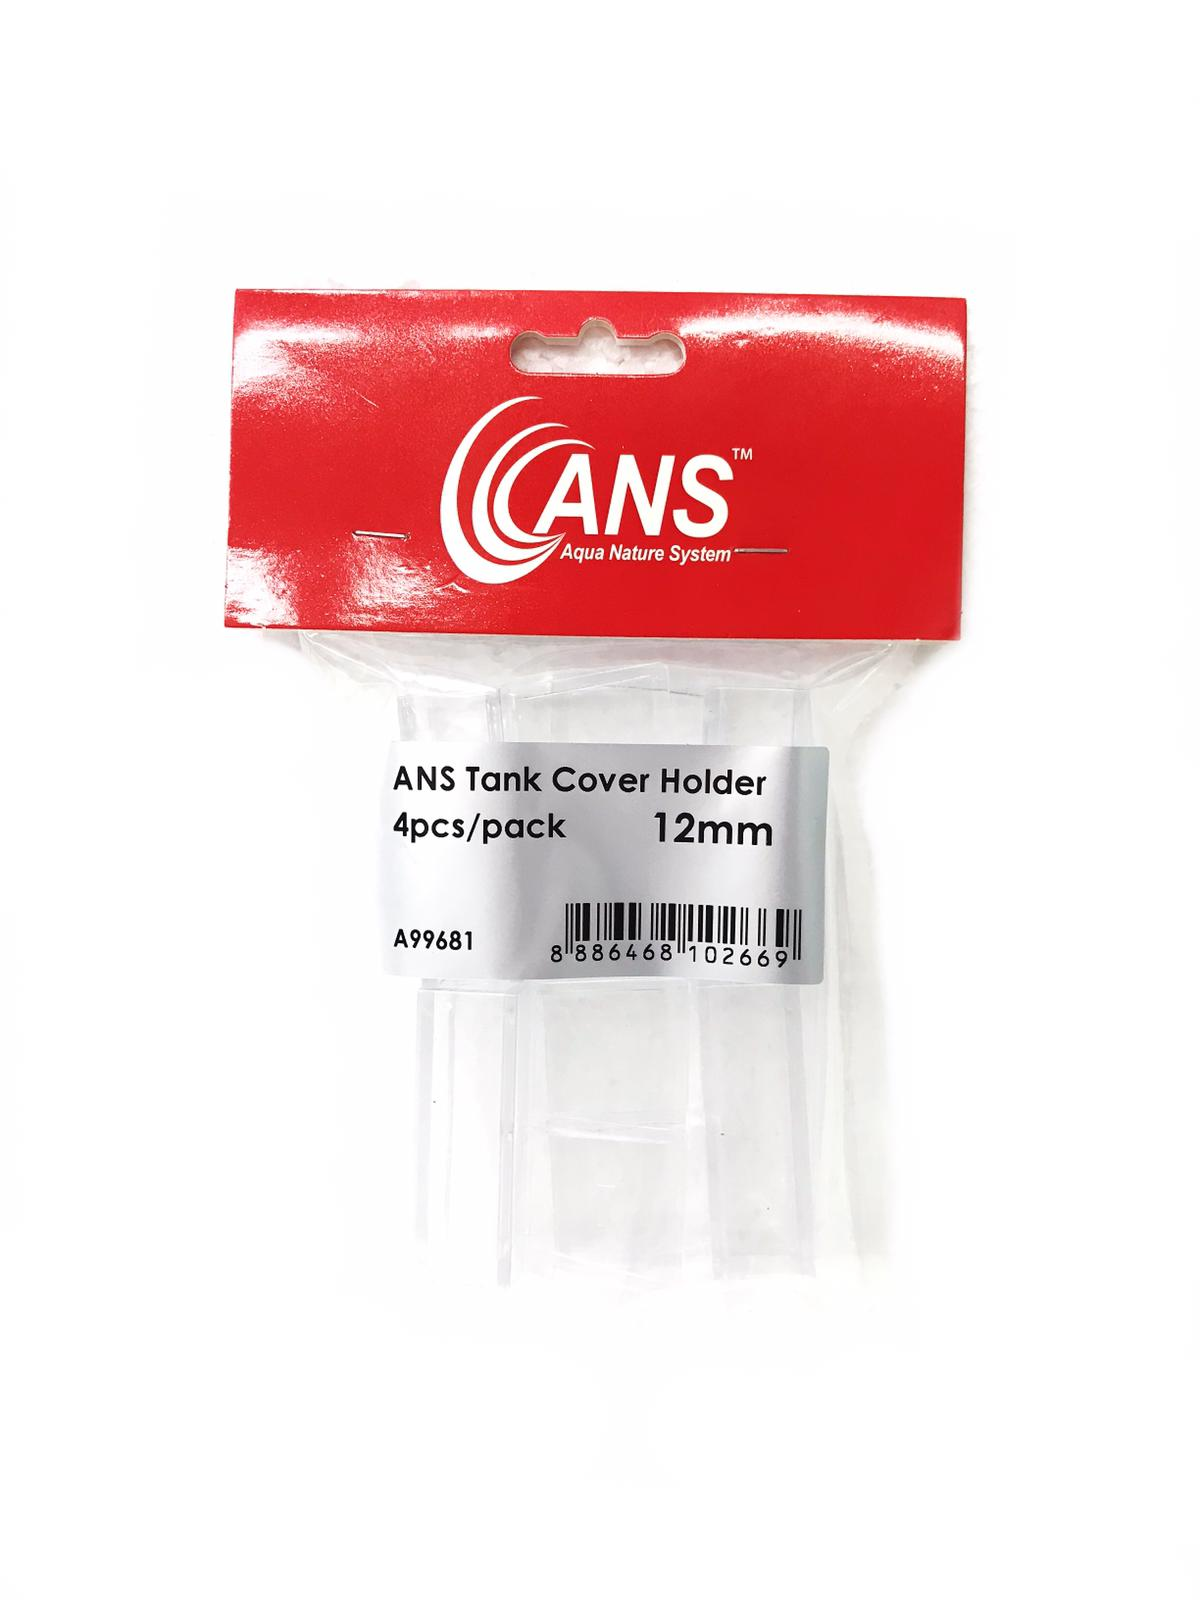 Ans Tank Cover Holder 4pcs/pack